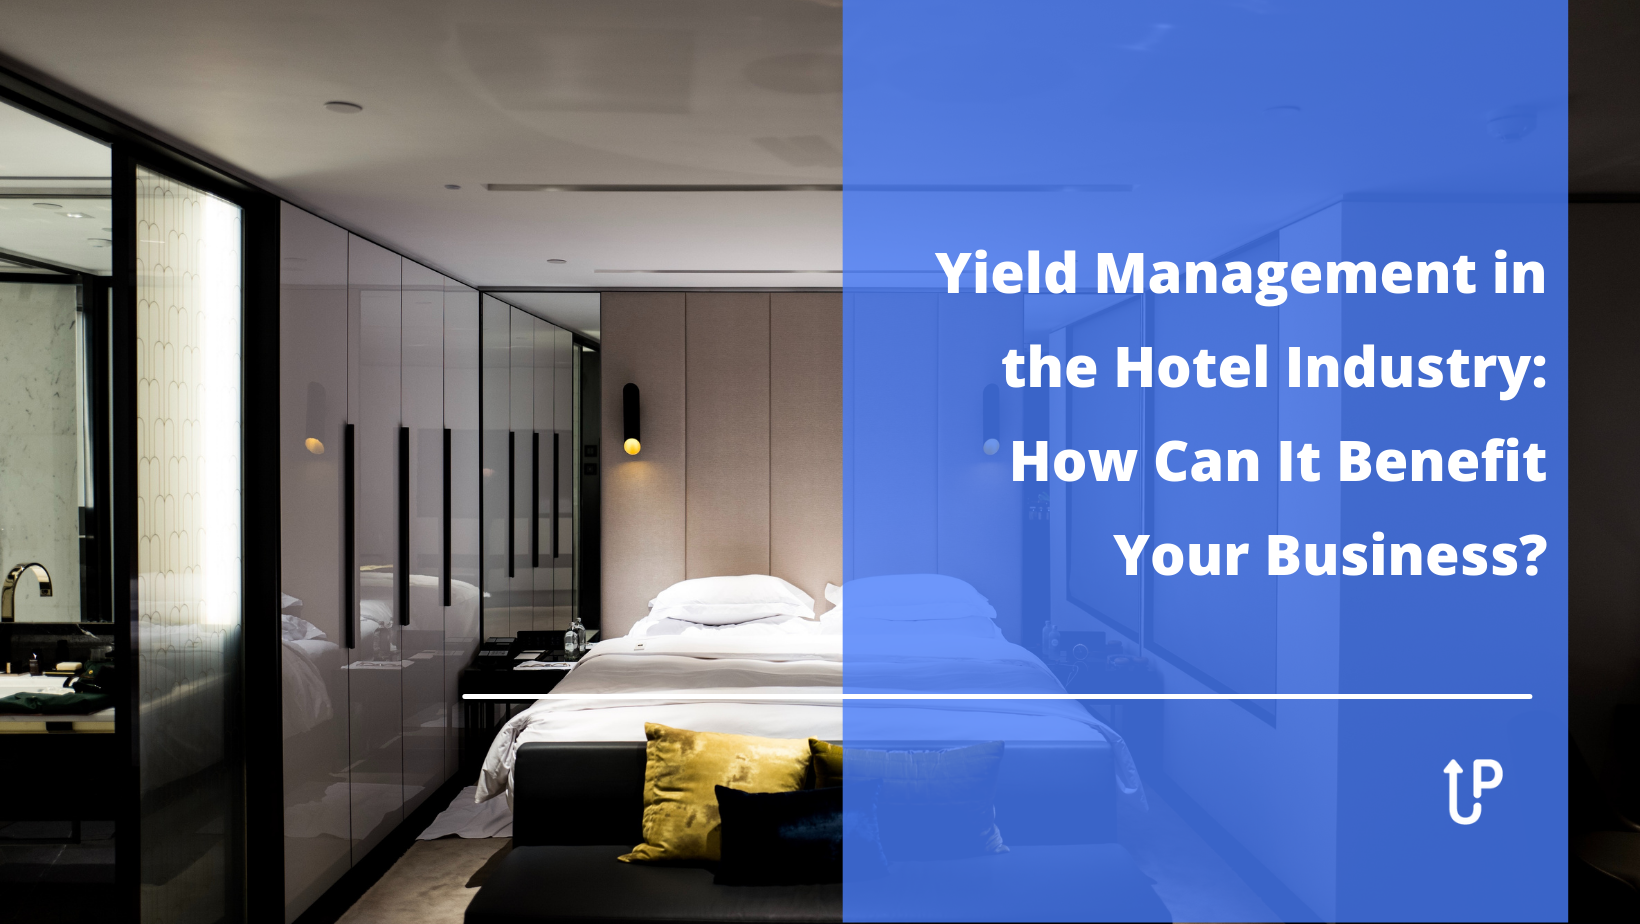 yield management in the hotel industry